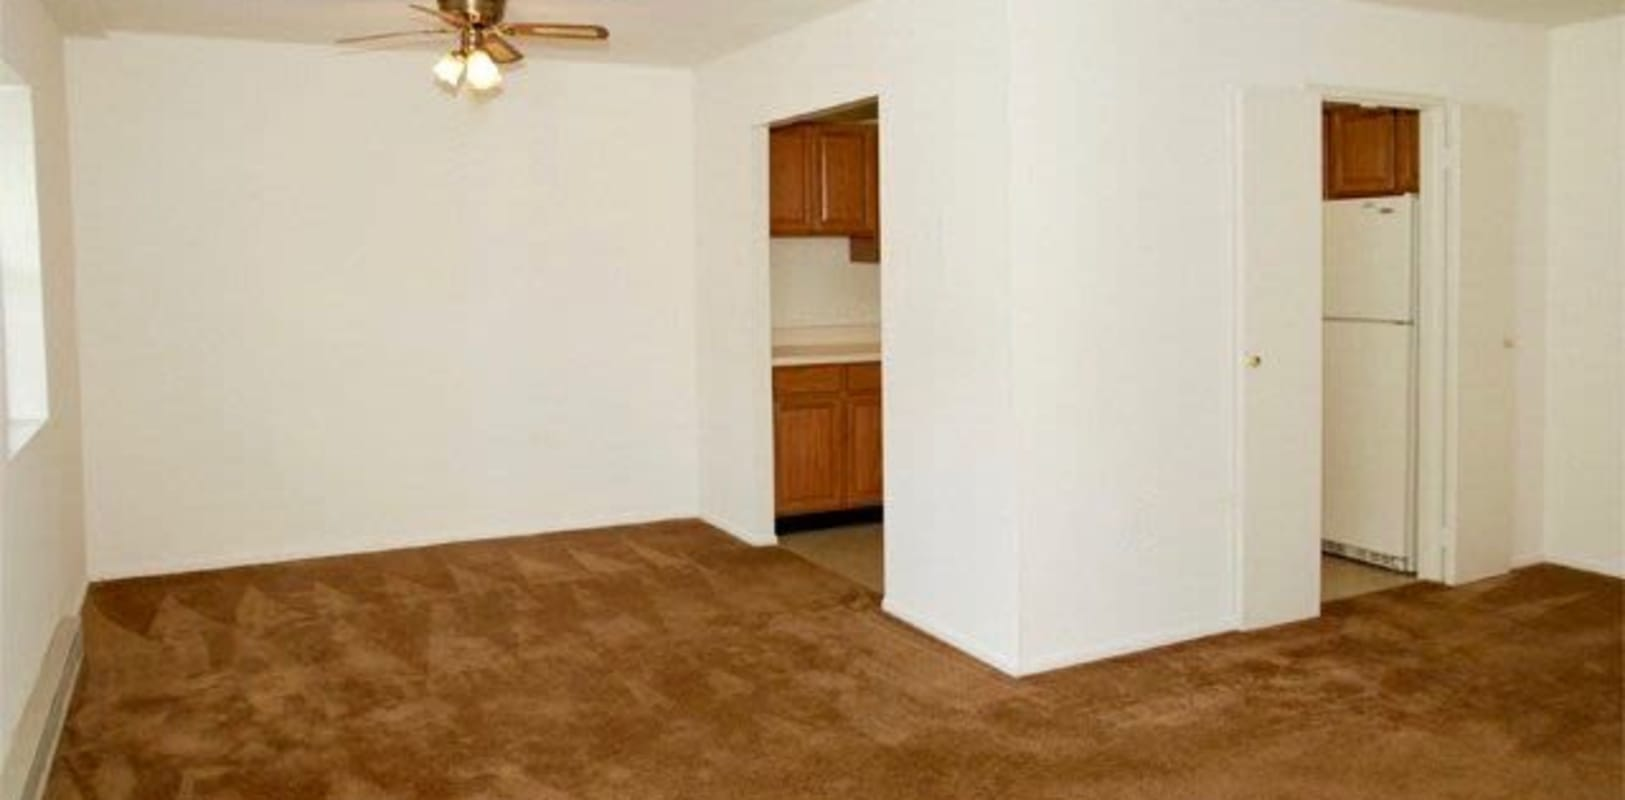 Apartment living room with white walls and wood style floors at Lehigh Valley in Whitehall, {location_state_name}}